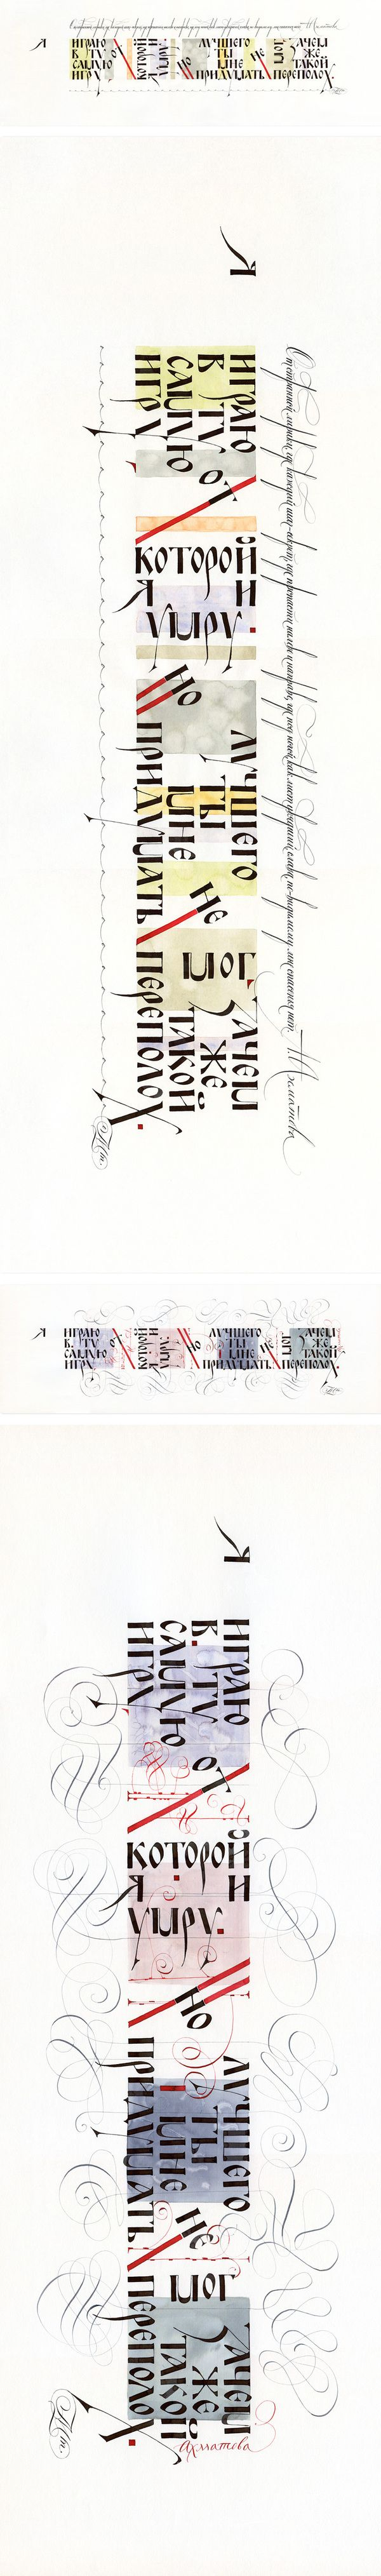 Artist: Marina Marjina | Calligraphy: A quote from Romain Rolland | Paper, pointed nib, inks; 297 x 420 c | Made for calligraphy & typography Rutenia festival 2010 | url: http://www.behance.net/mmarina